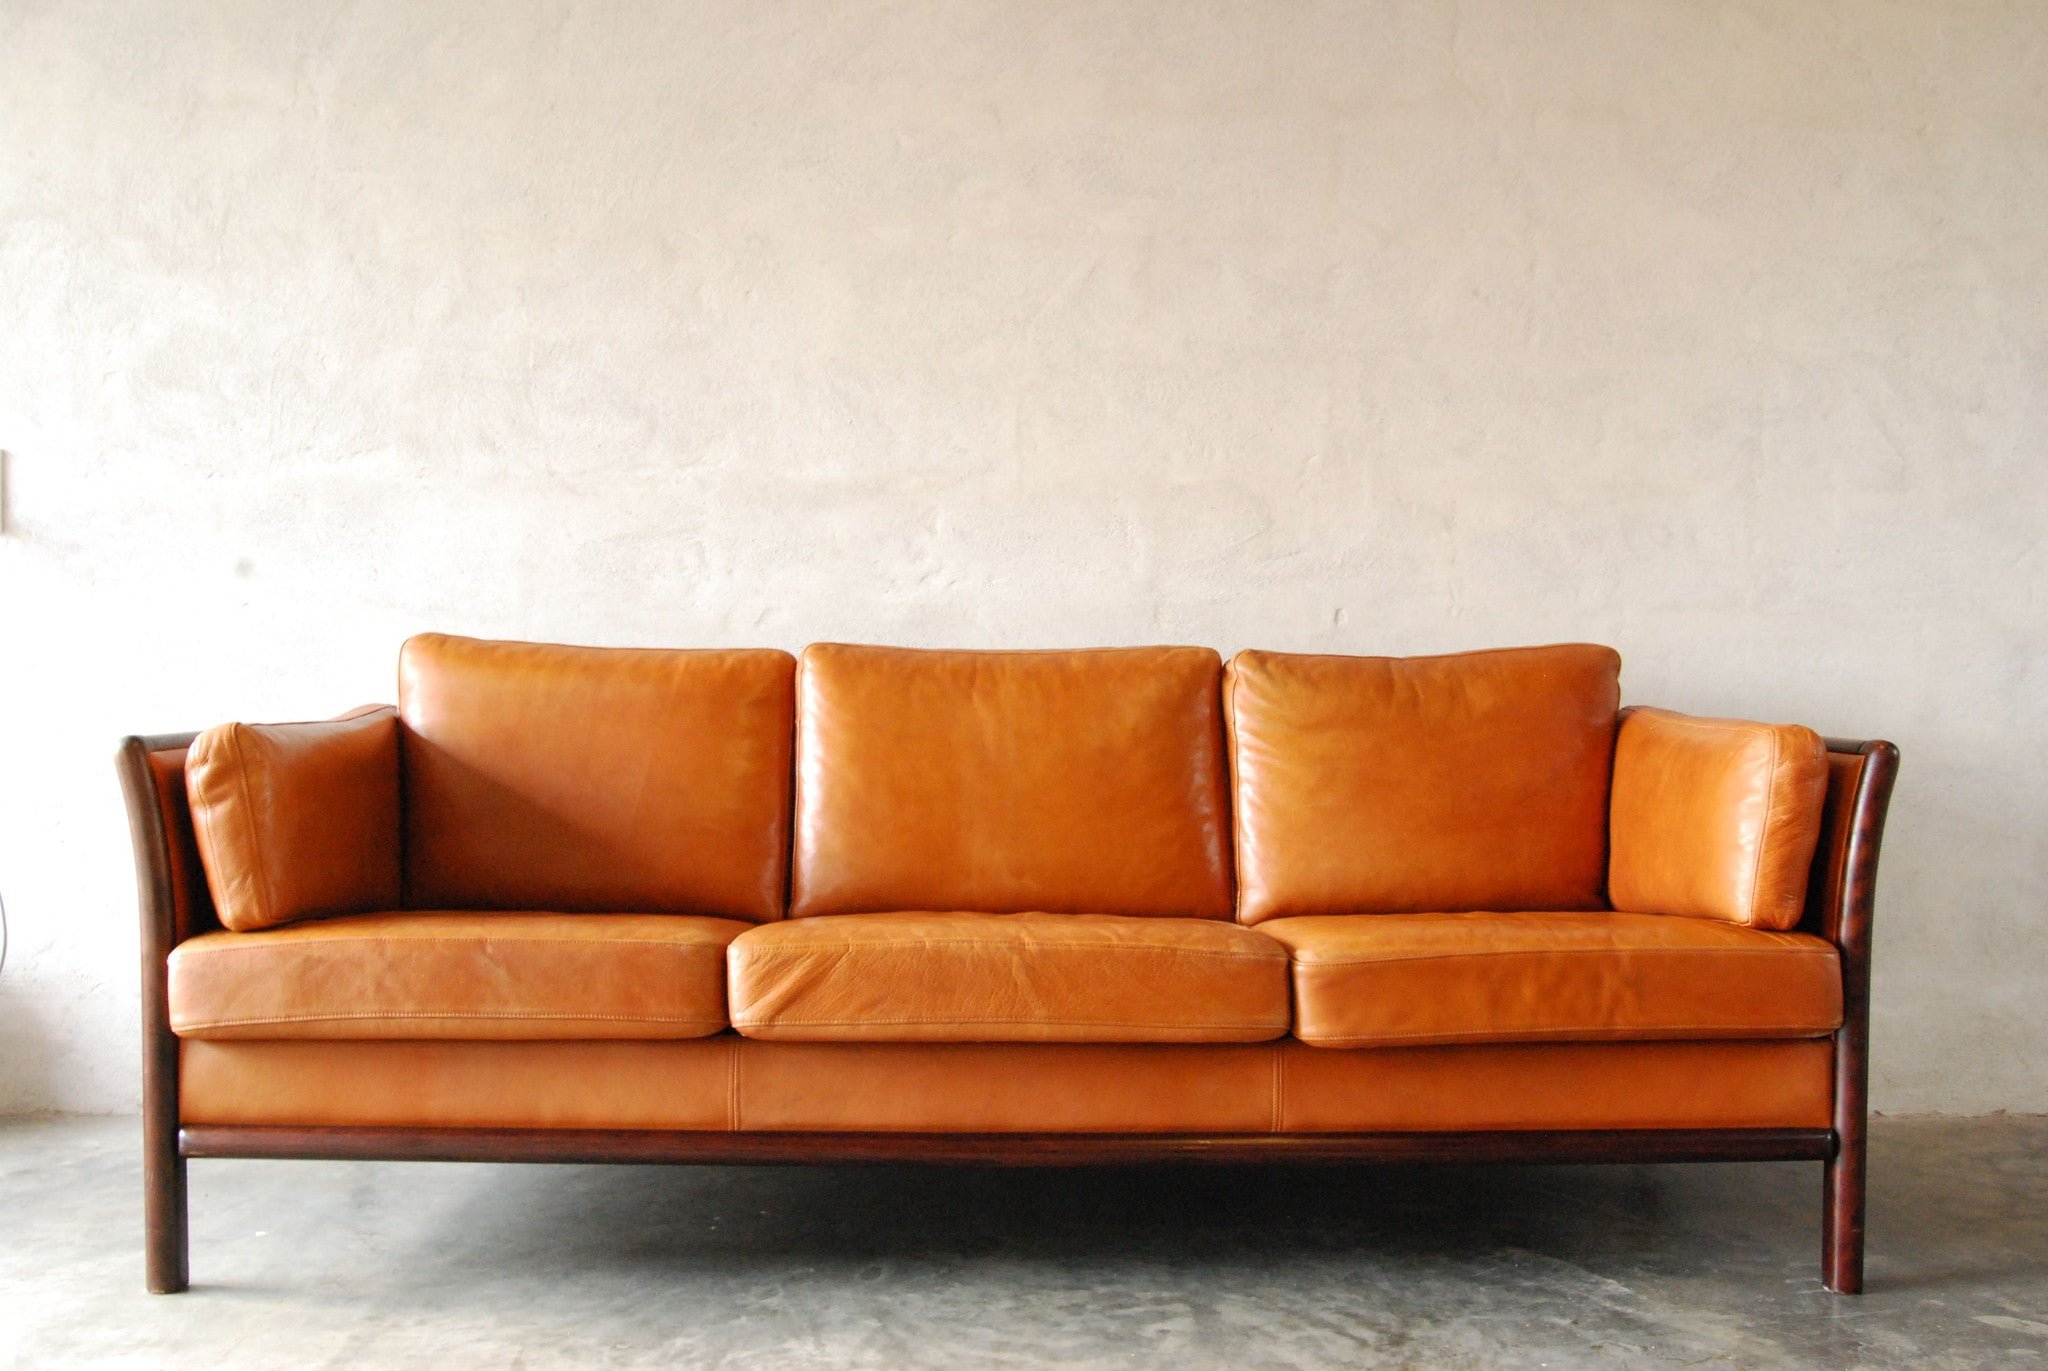 Chase & Sorensen Three seat sofa by Mogens Hansen